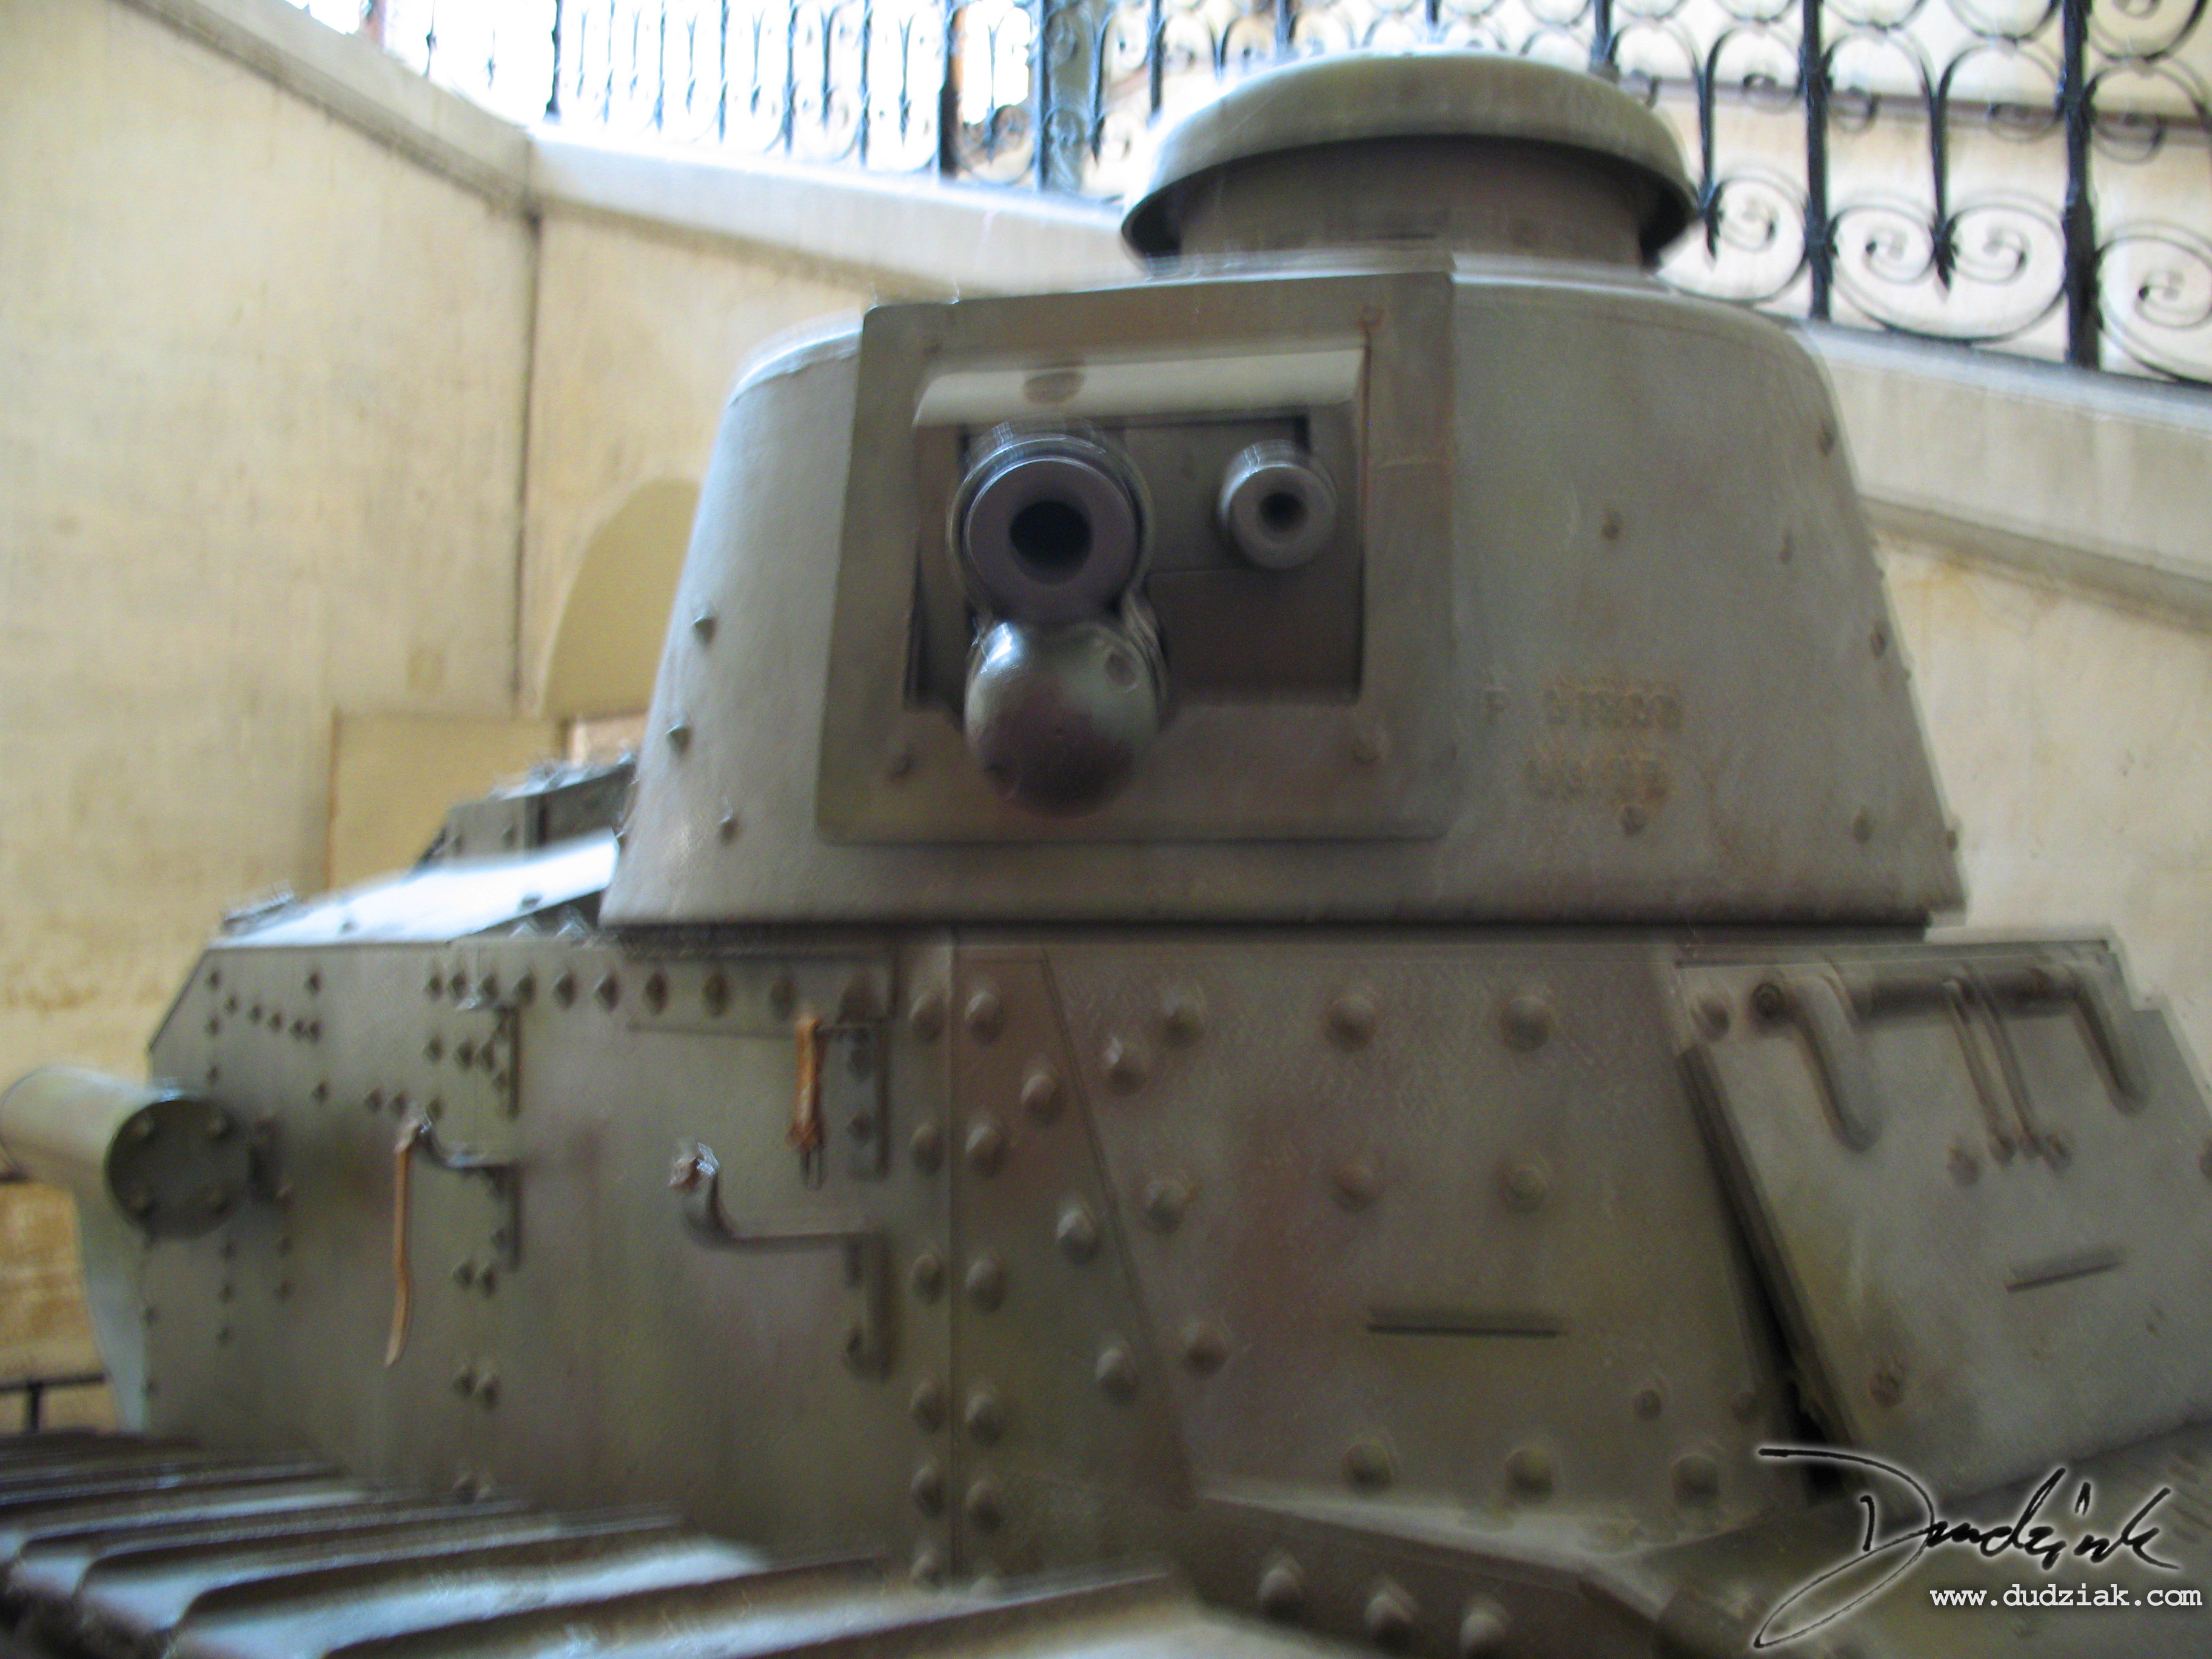 french military,  tank,  Military Museum,  Les Invalides,  french tank,  ww2,  Paris France,  WWII